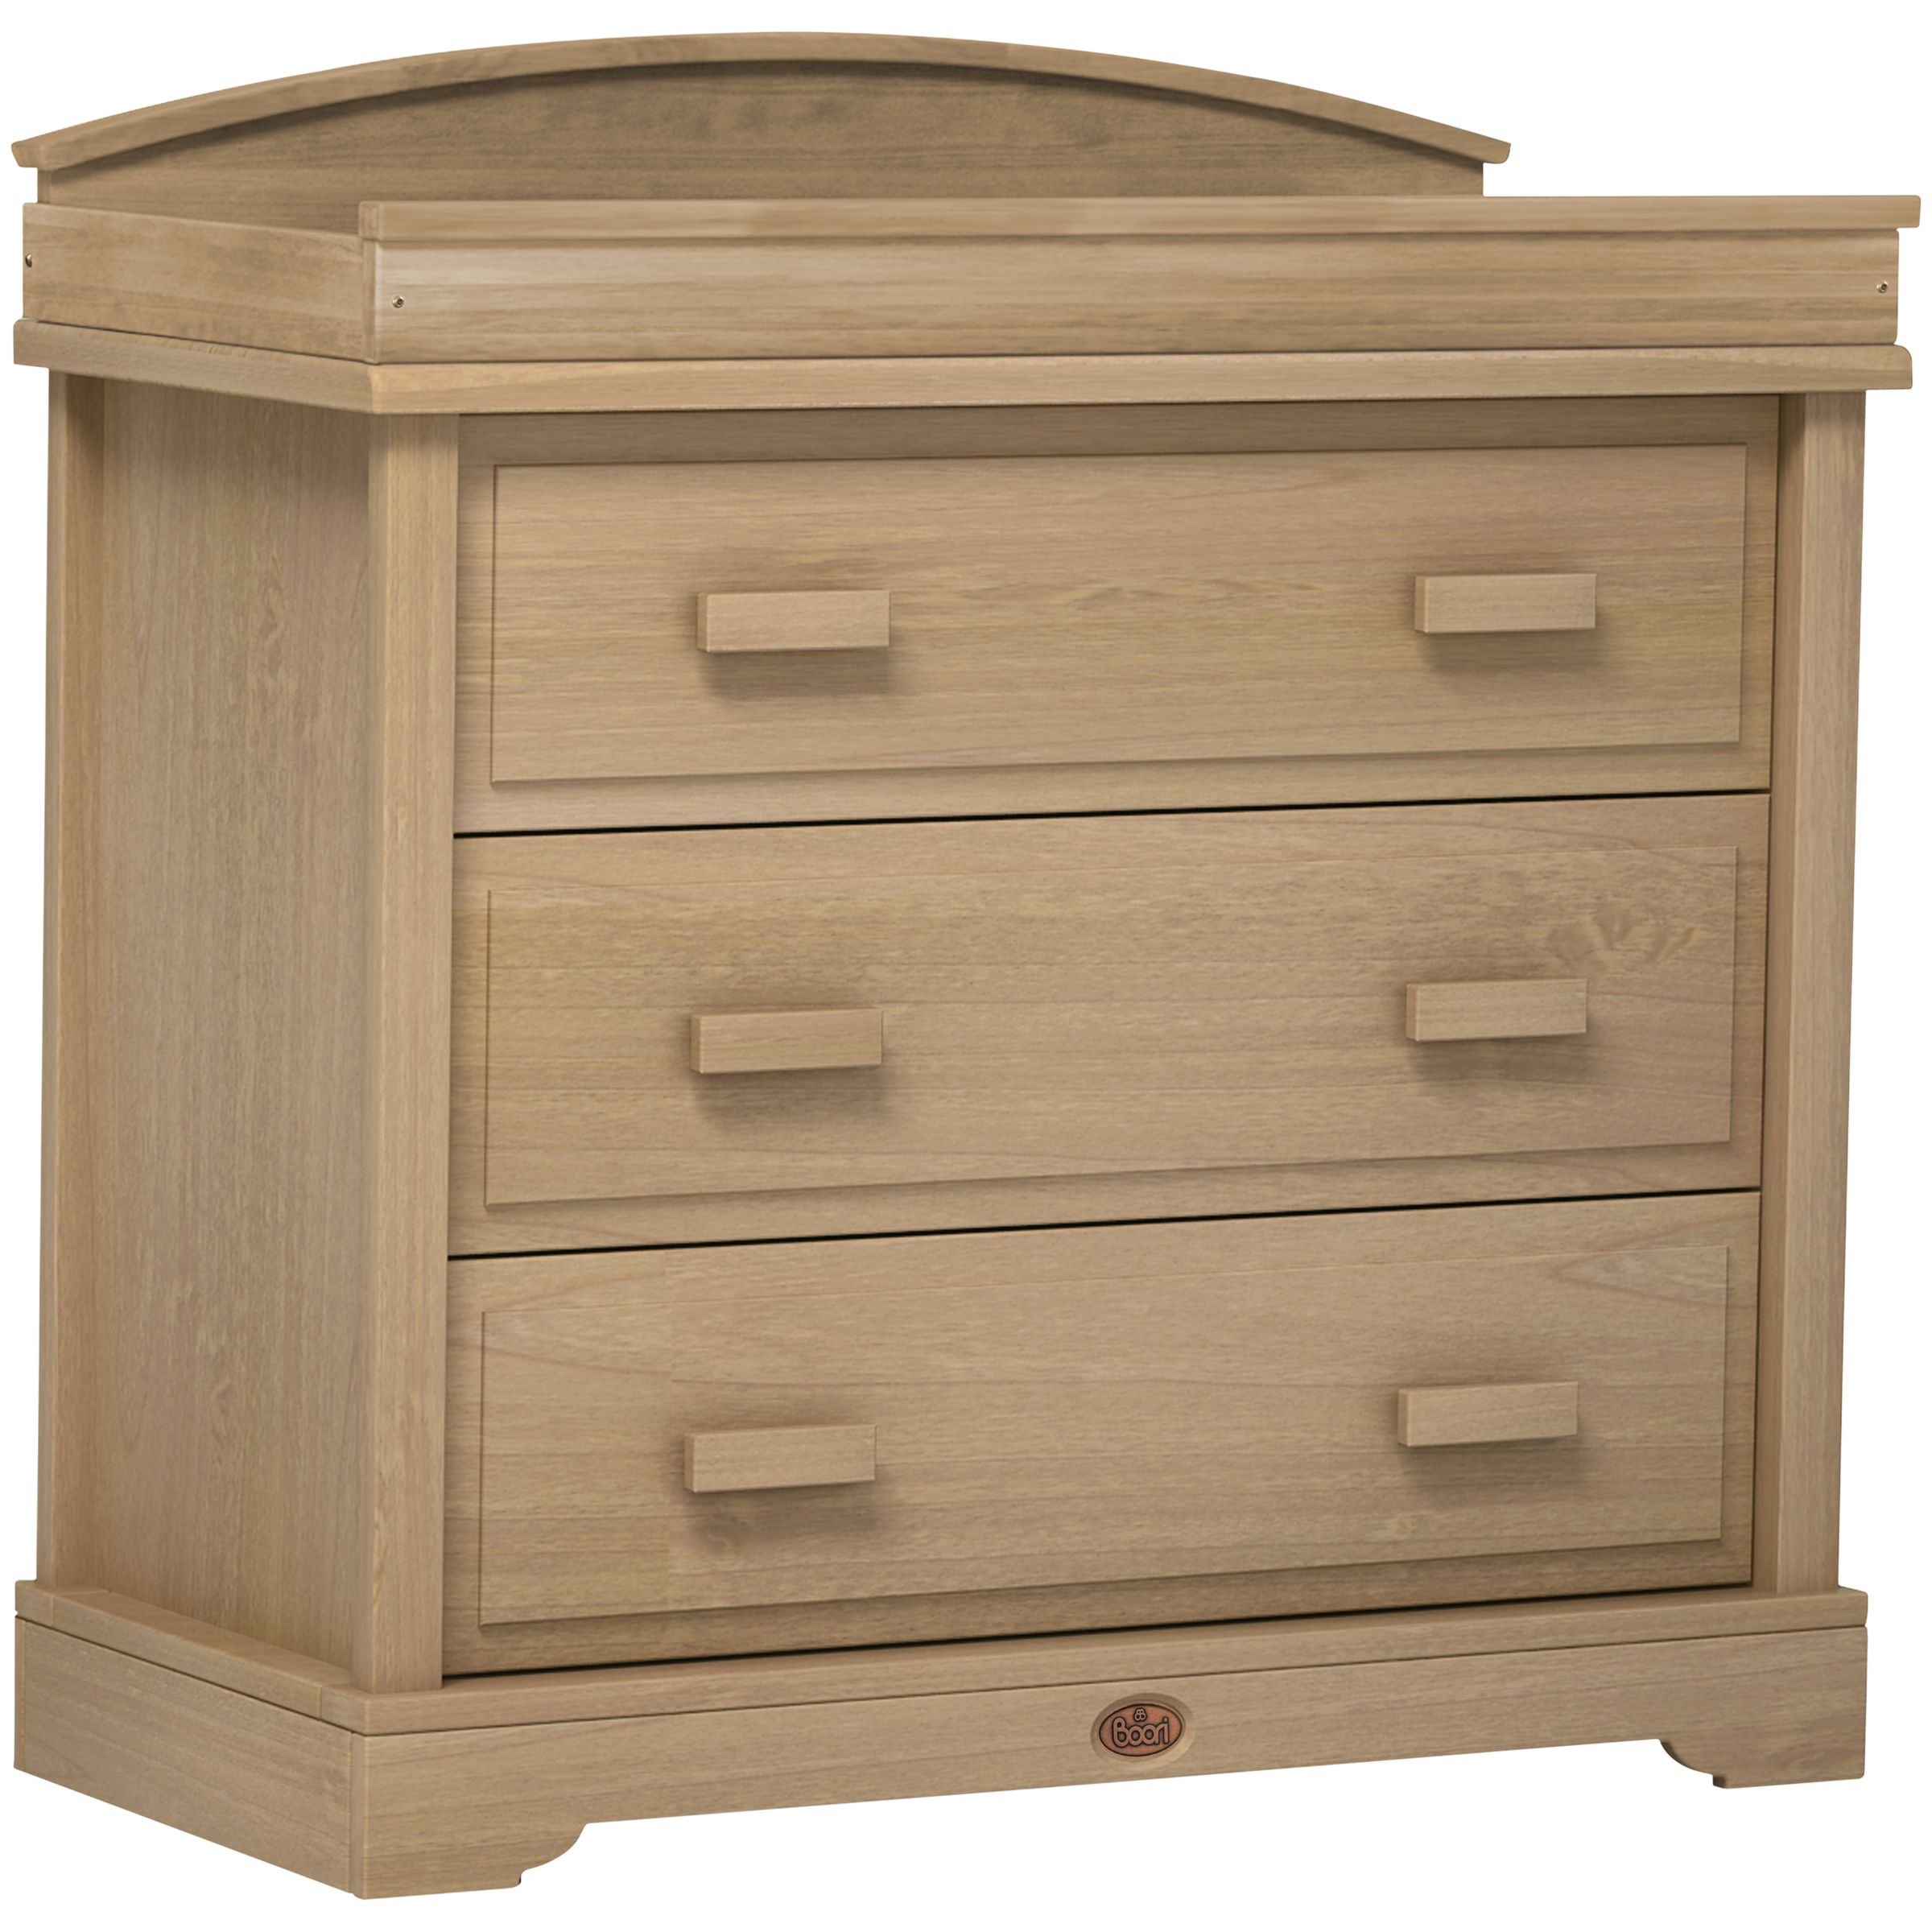 Boori Boori 3 Drawer Dresser with Arched Change Station, Almond